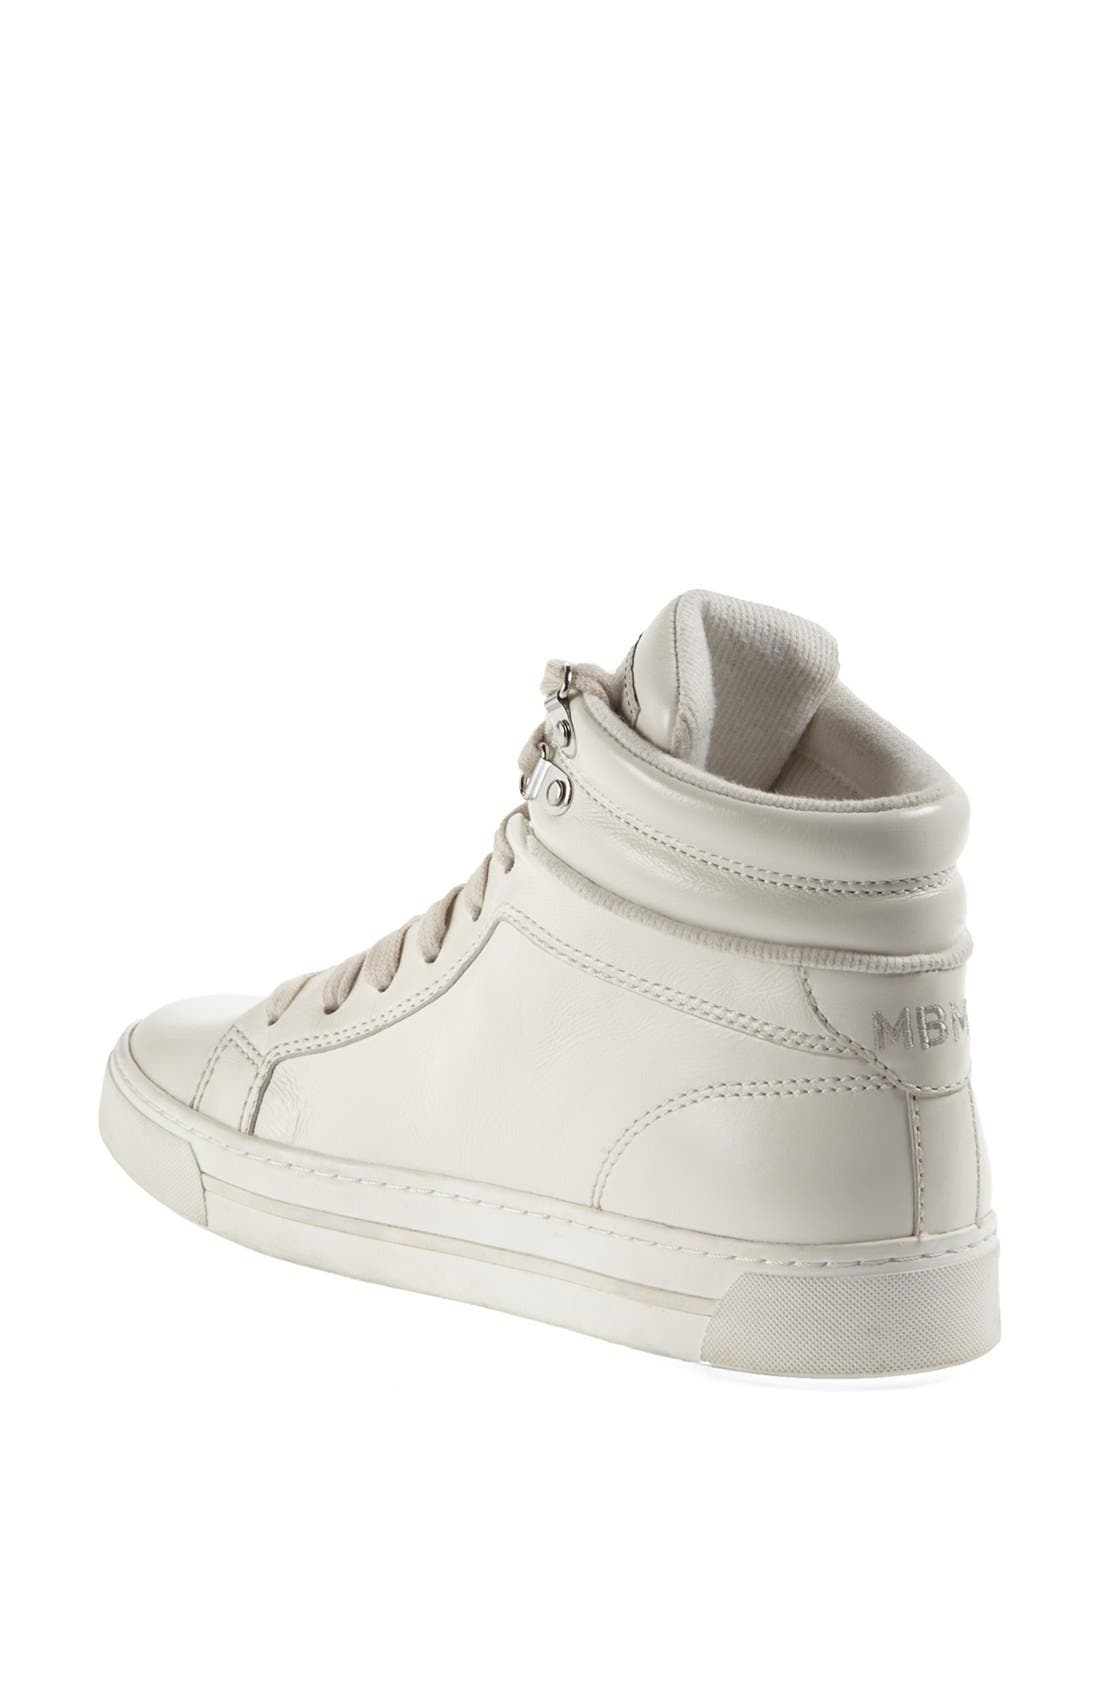 Alternate Image 2  - MARC BY MARC JACOBS 'Cute Kicks' Sneaker (Online Only)